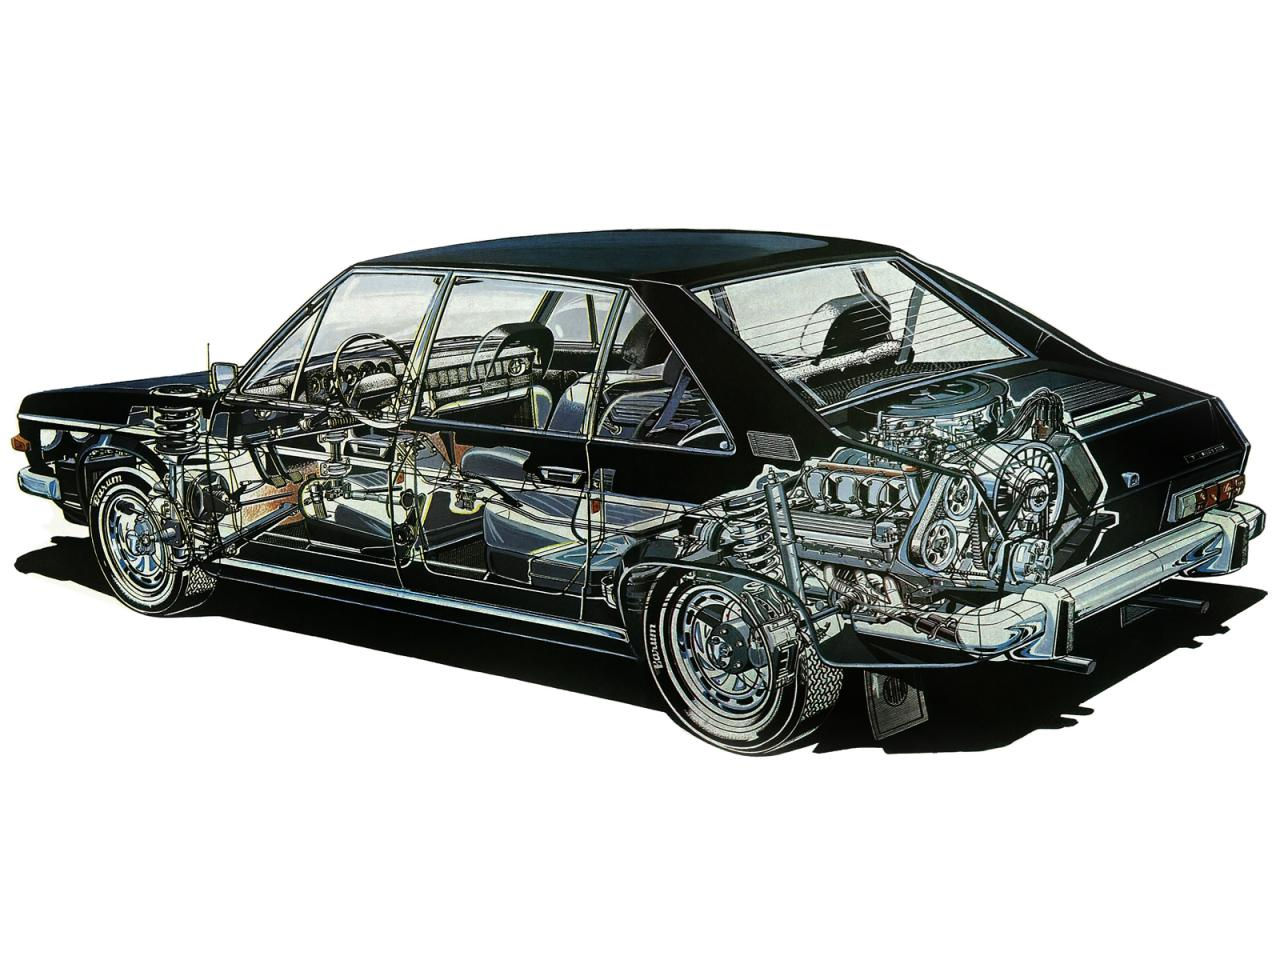 Cross section drawing of the Tatra 613 showing the semi-mid engine layout. The transverse V8 engine has four cylinders ahead of the rear axle line and four cylinders behind it. (Picture courtesy tatra-club.com)